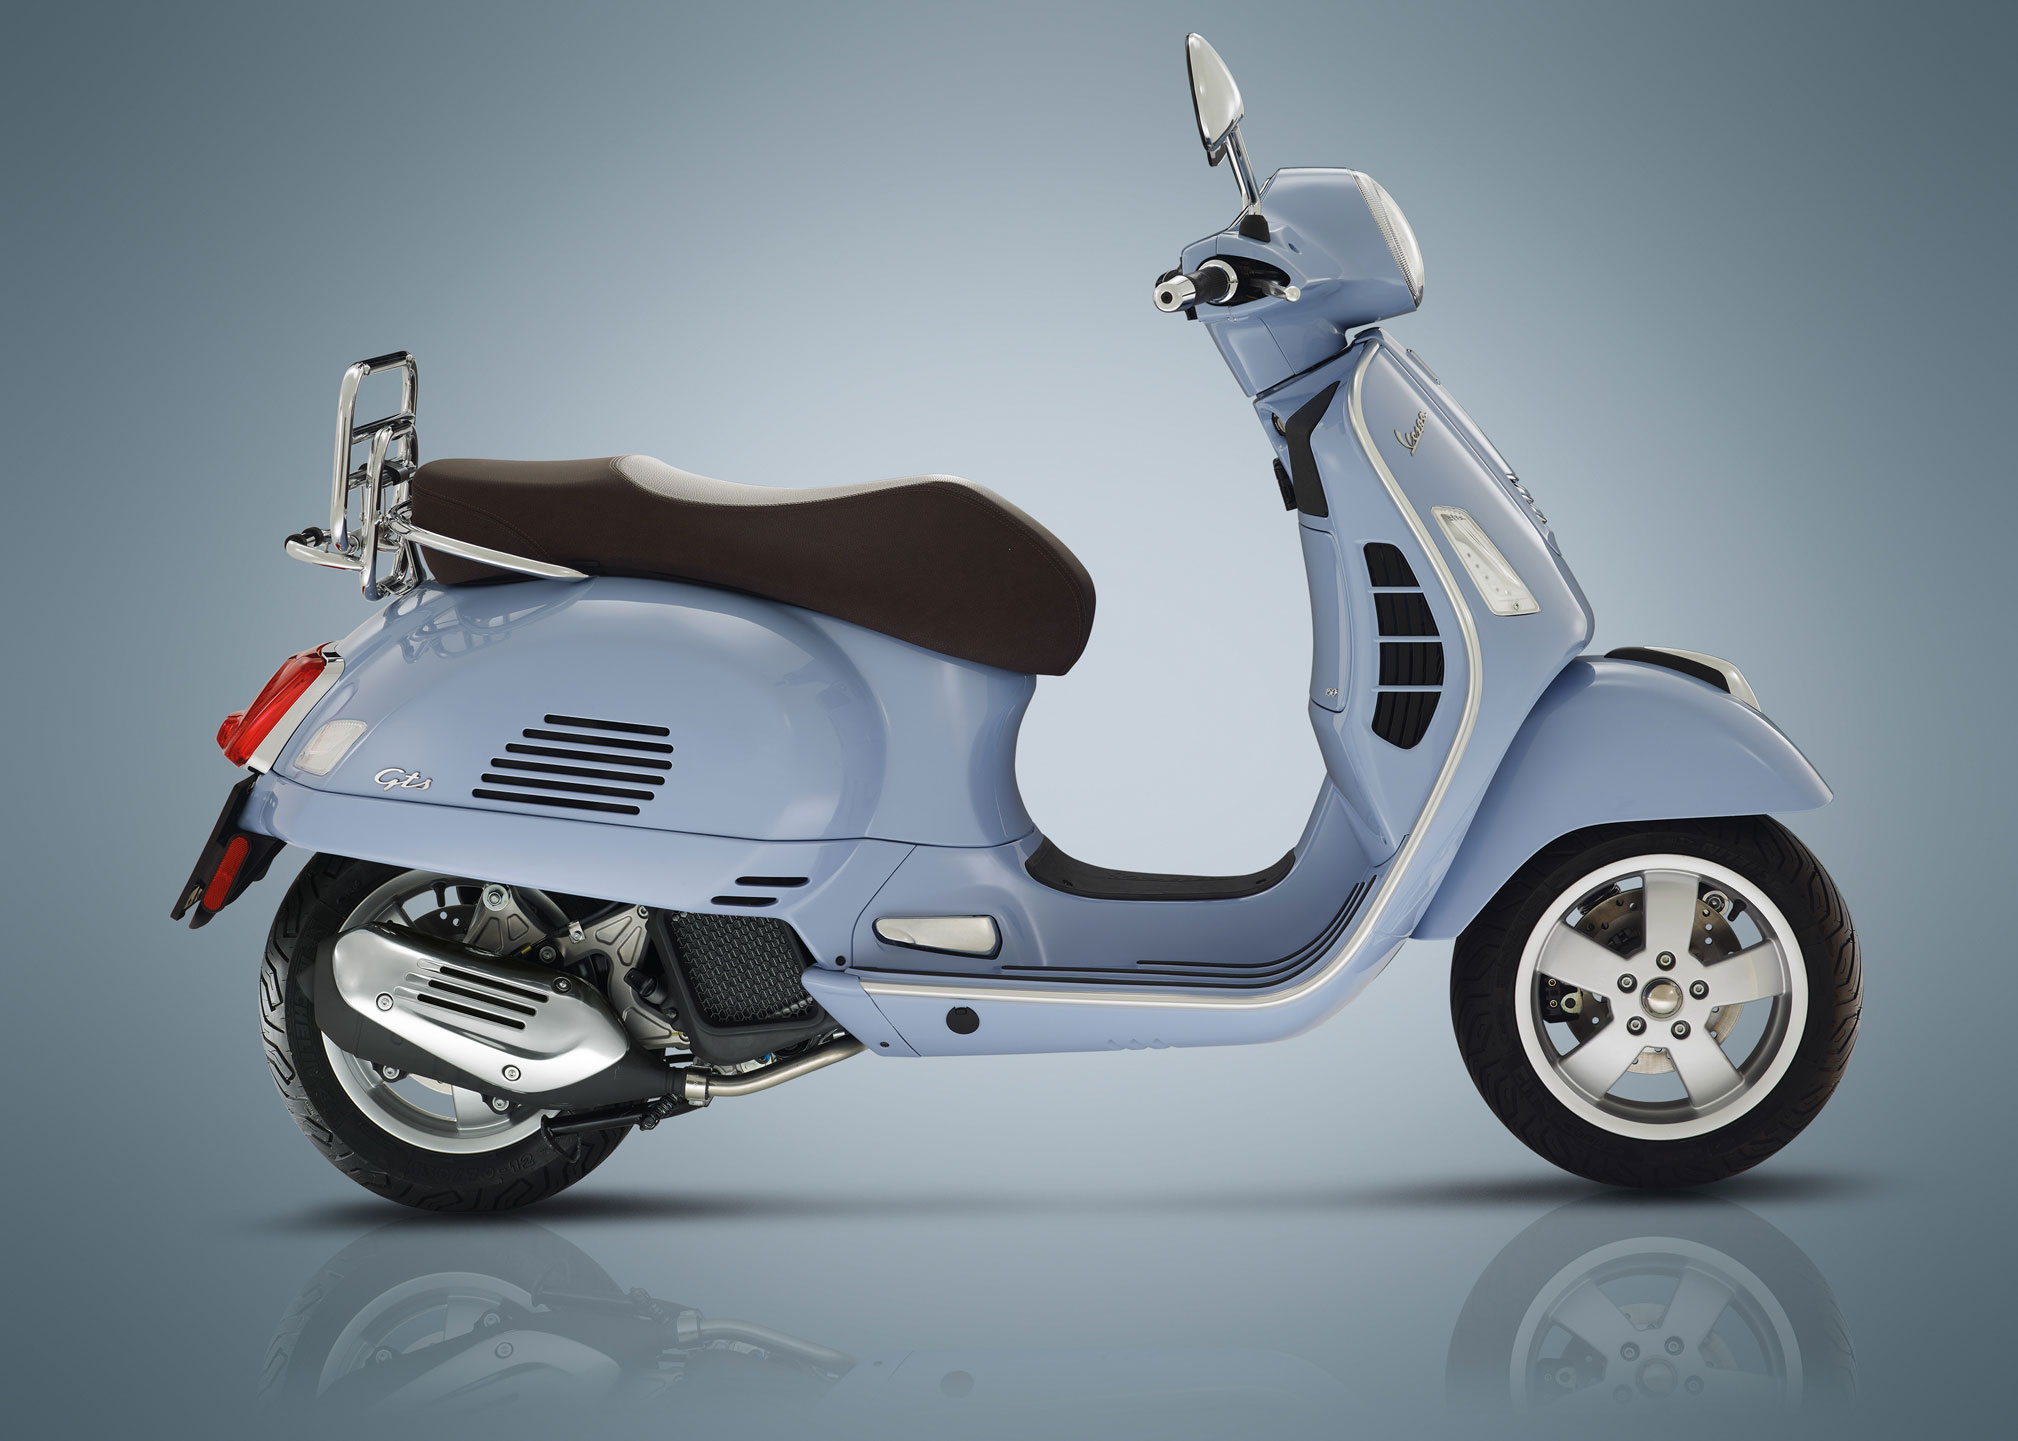 2018 Vespa Gts150 Review Total Motorcycle